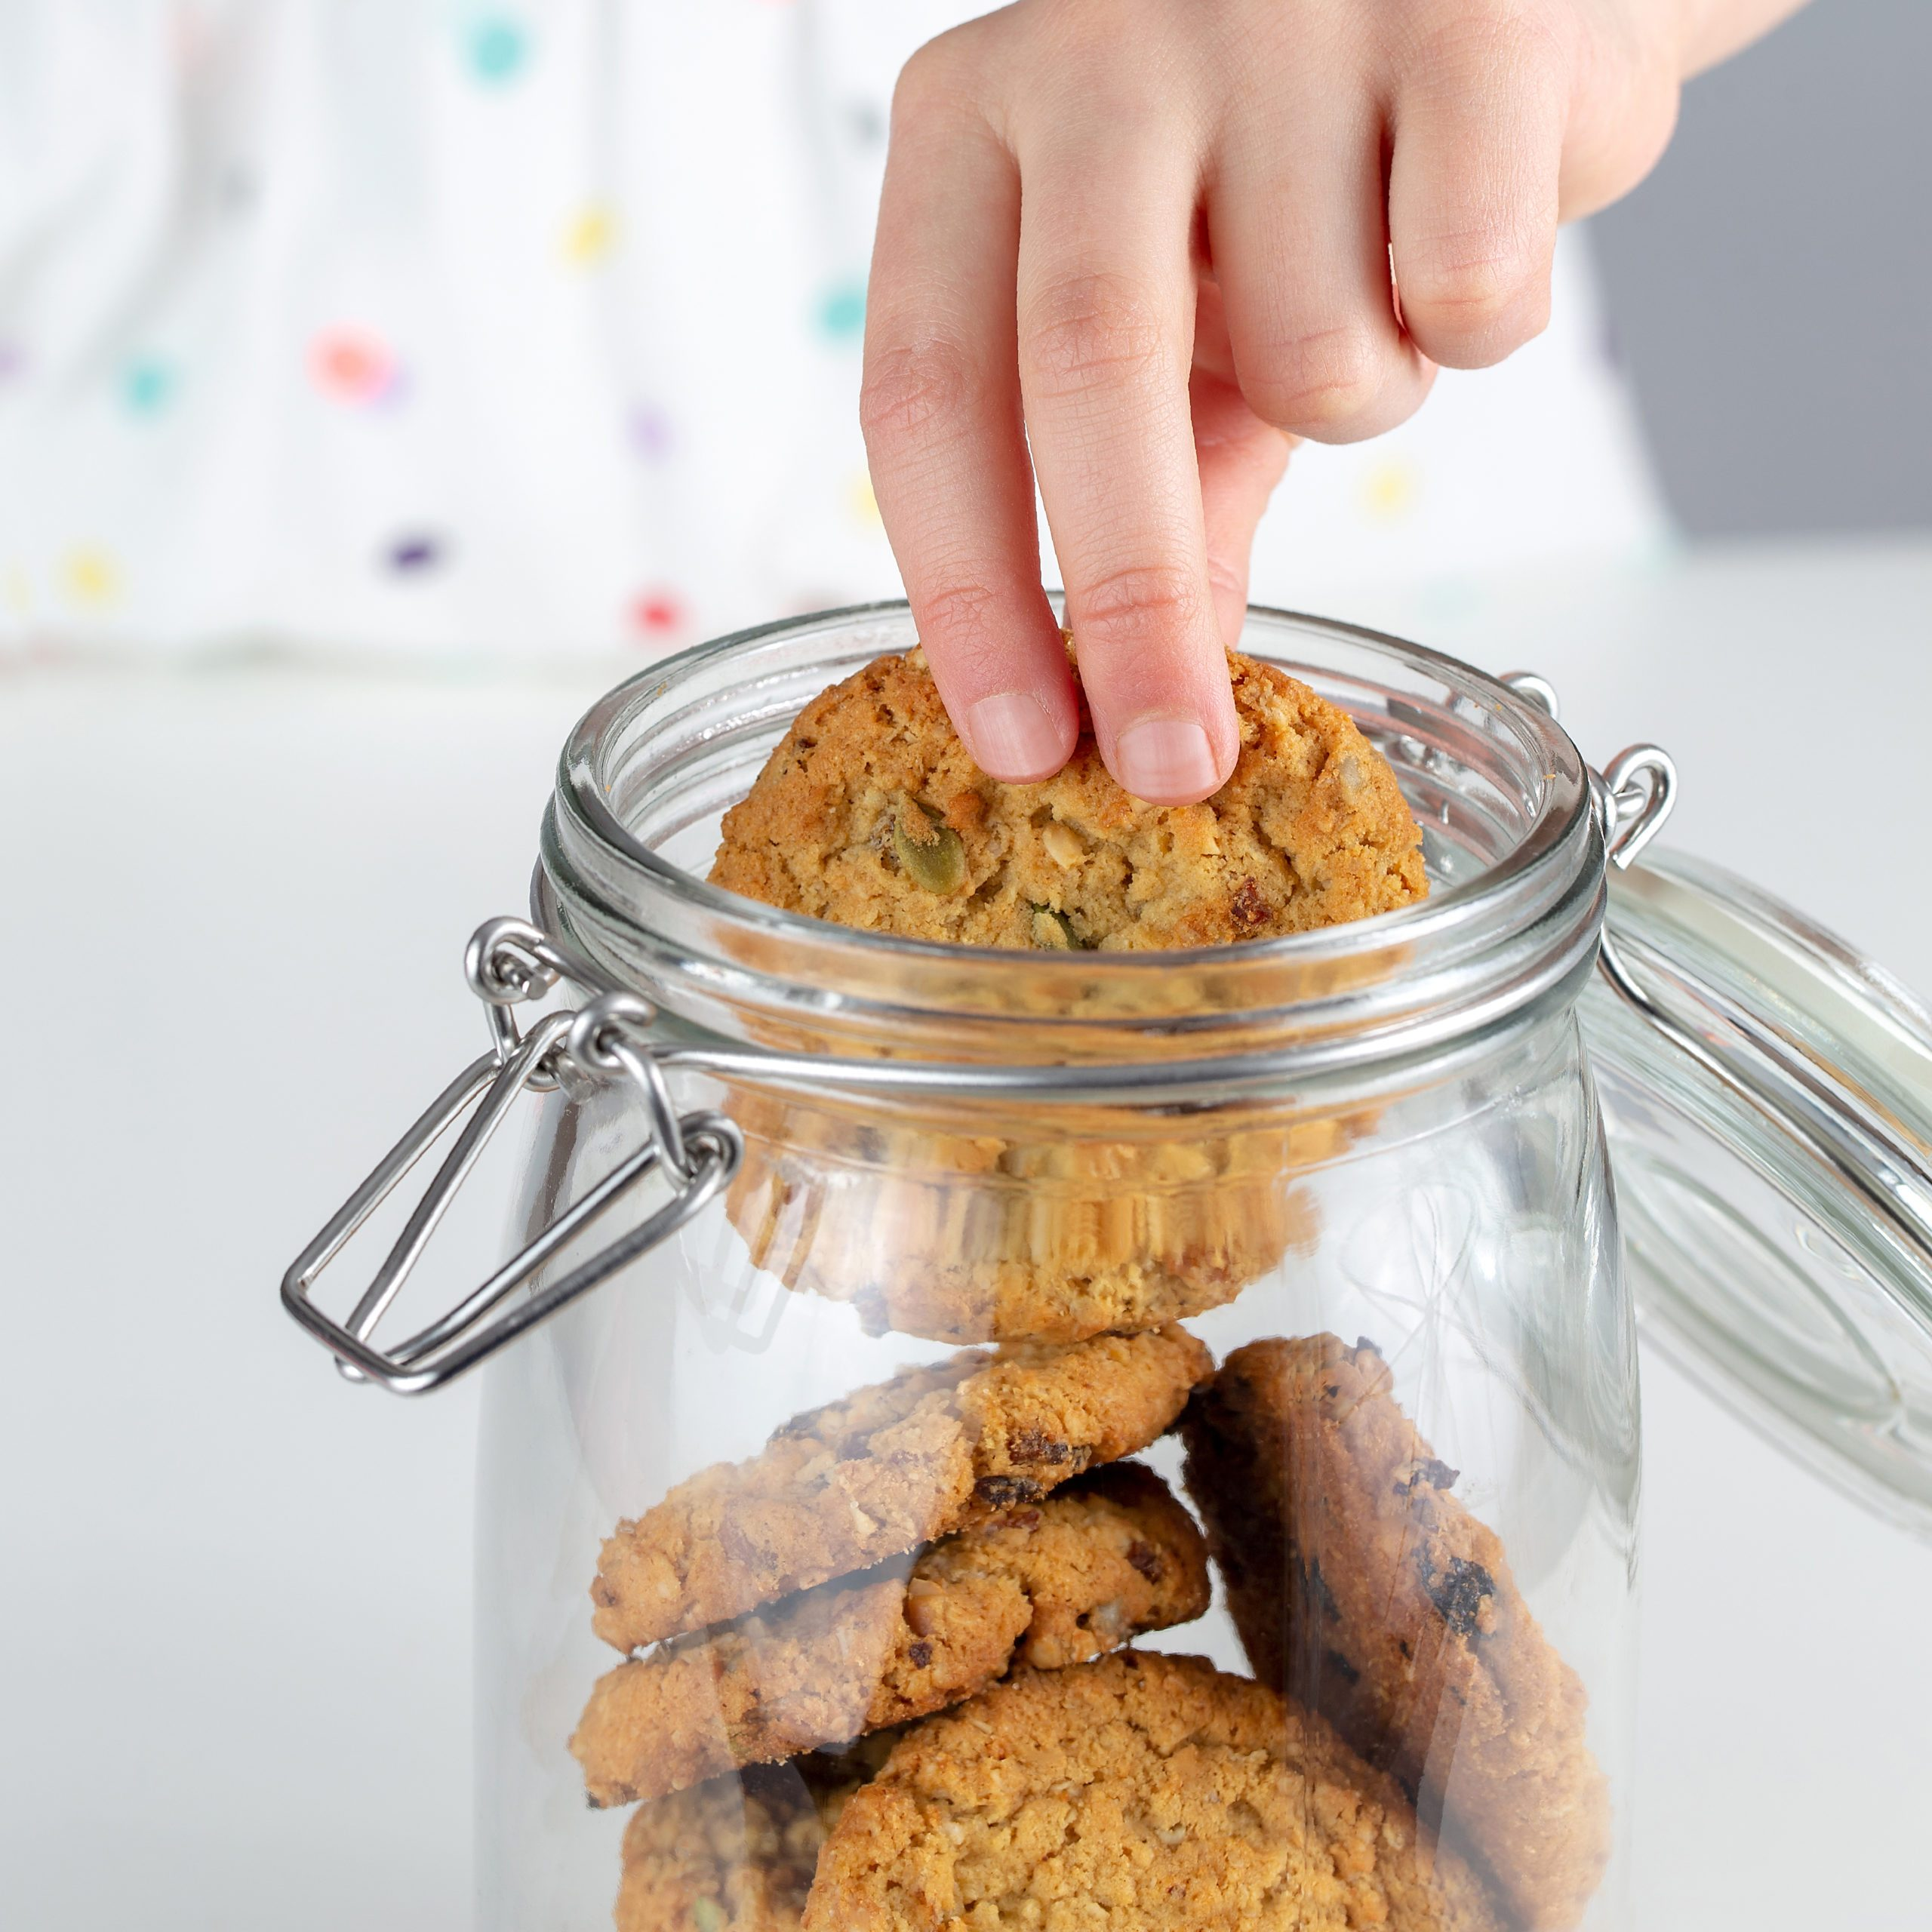 How To Store Cookies And Keep Them Fresh Taste Of Home